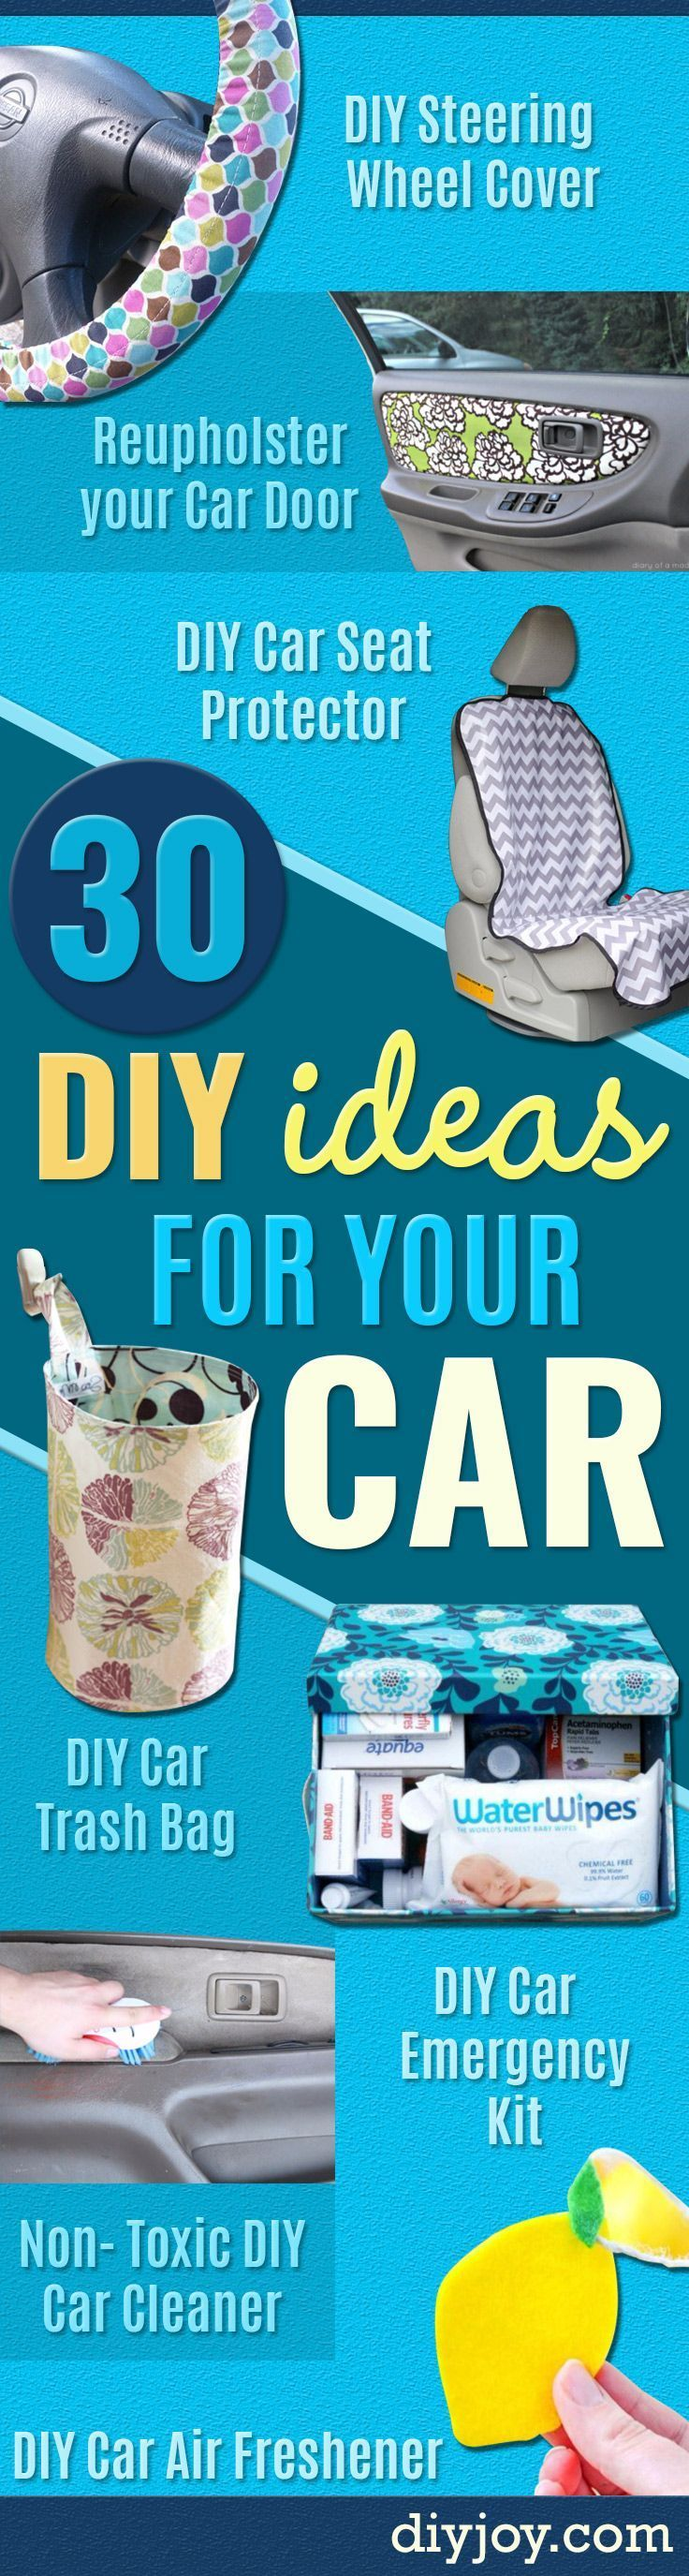 DIY Car Accessories and Ideas for Cars - ways to organize and clean your car